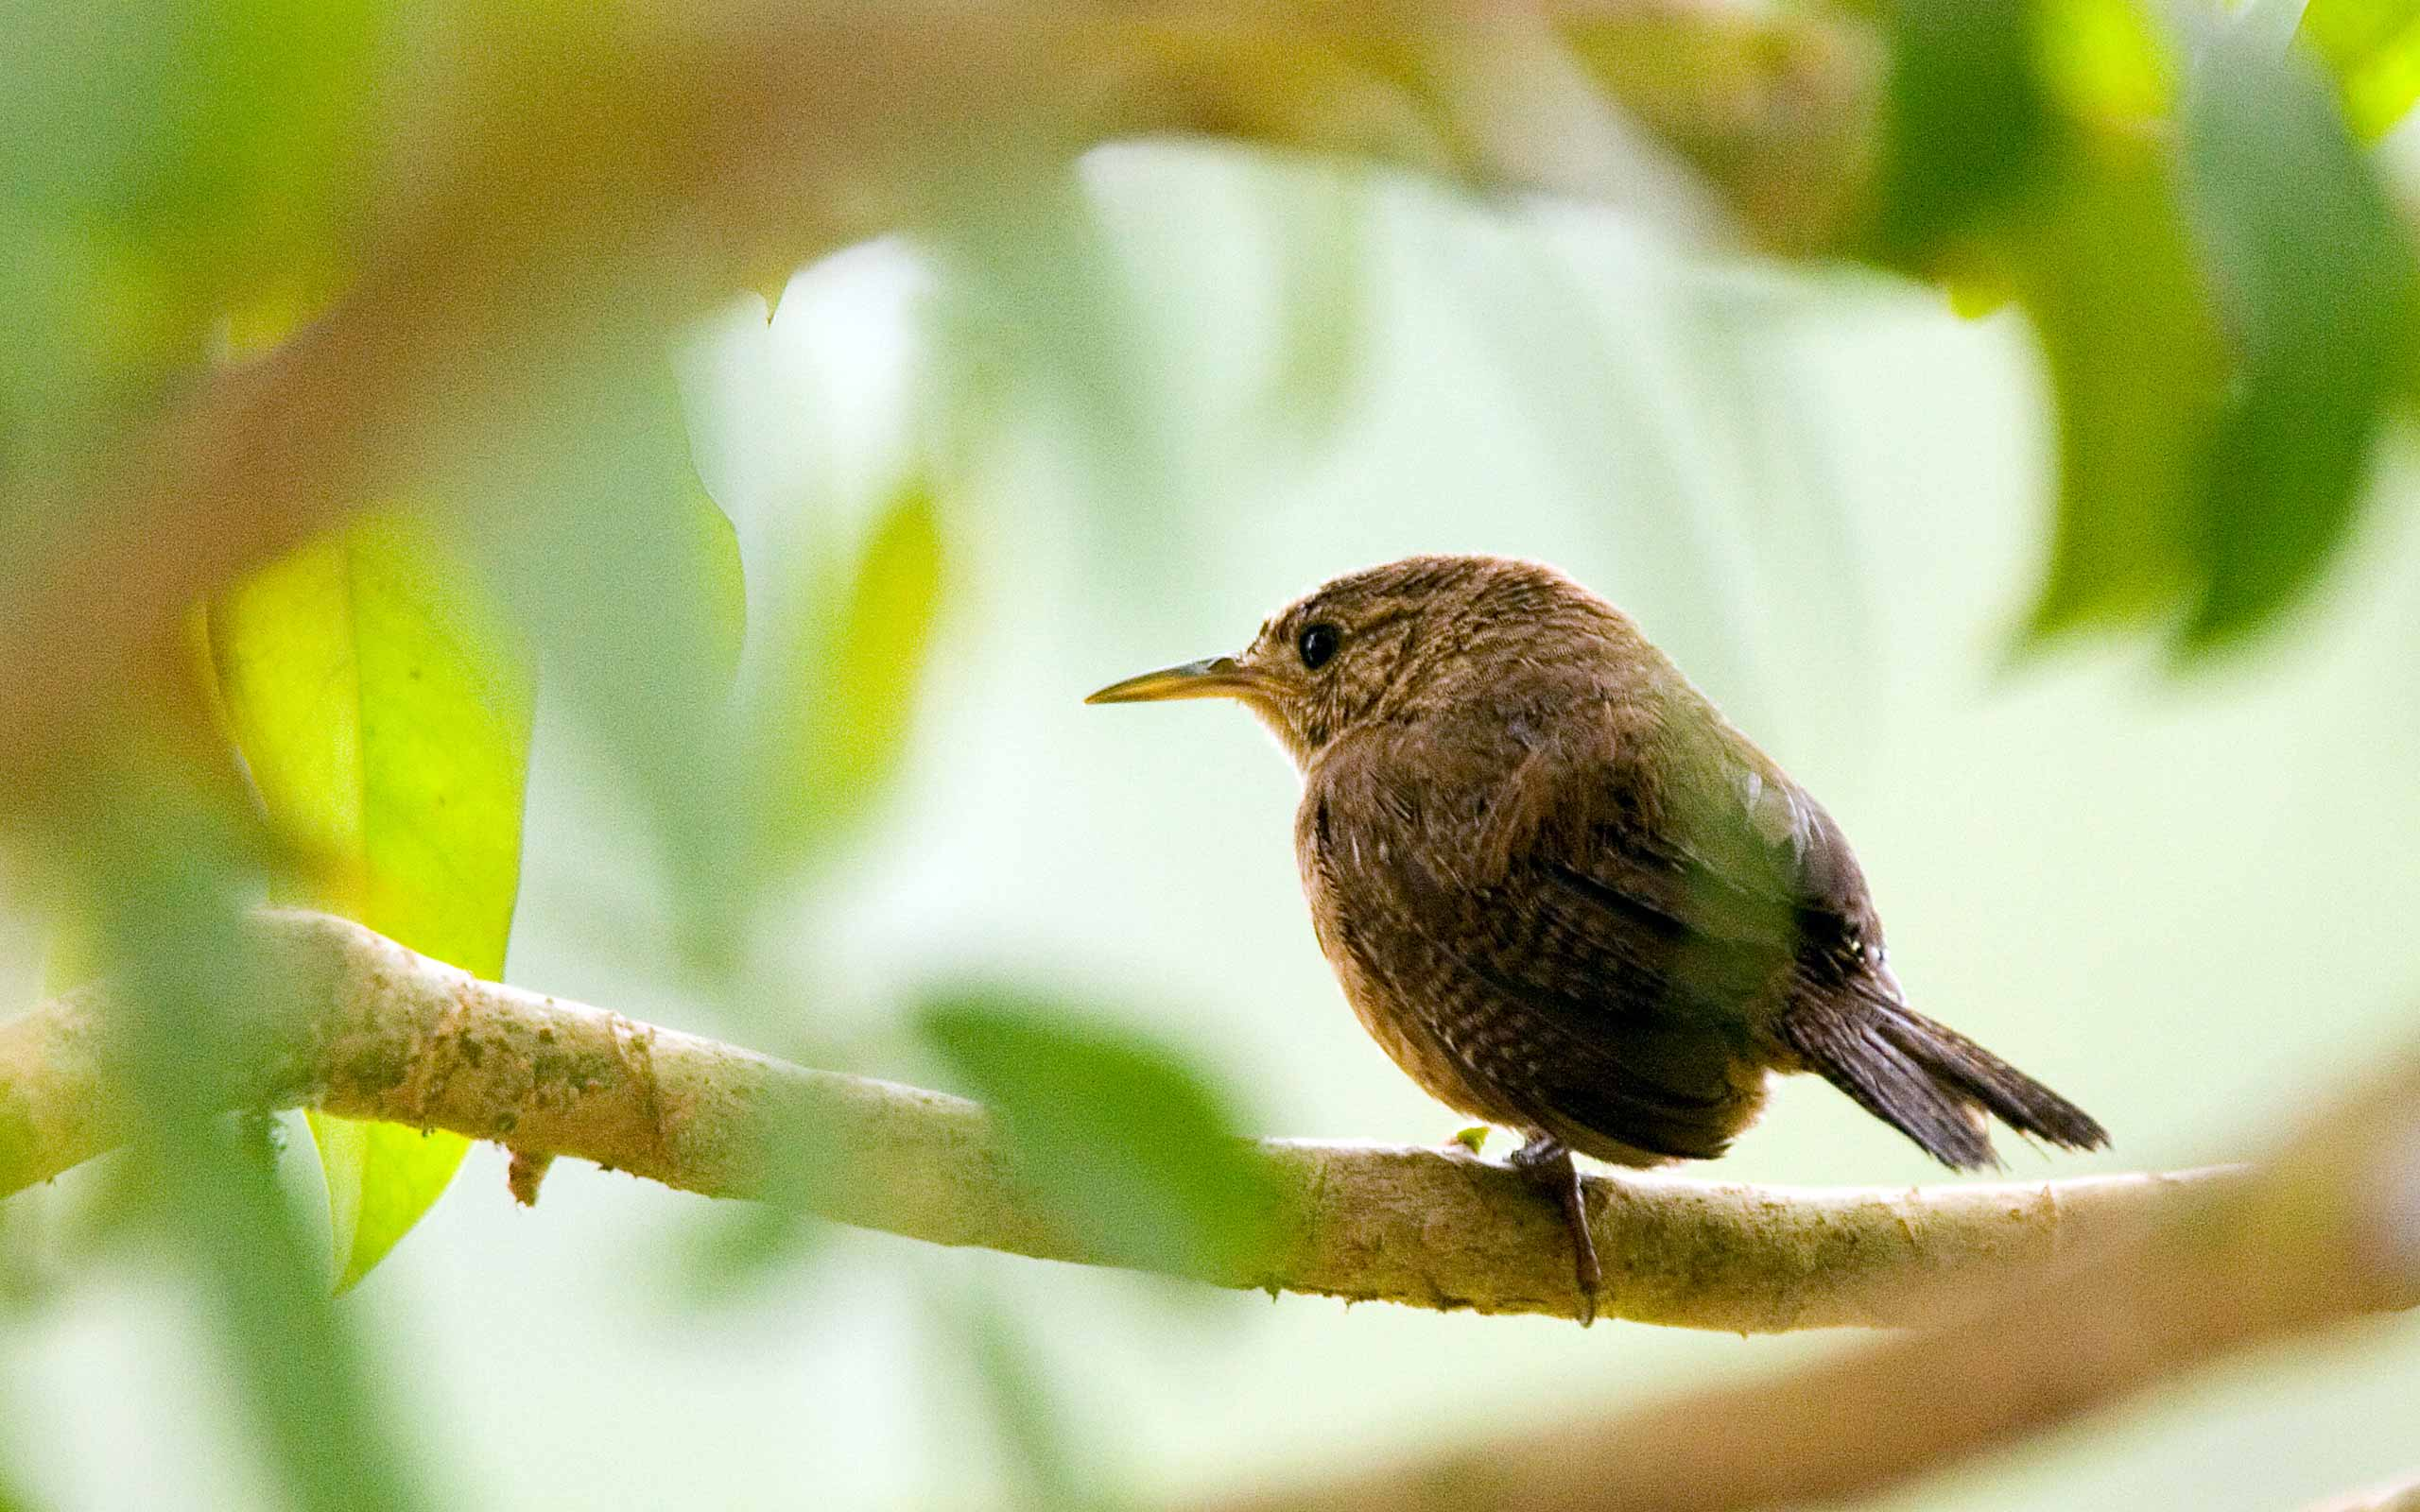 Small bird on a branch in Costa Rica